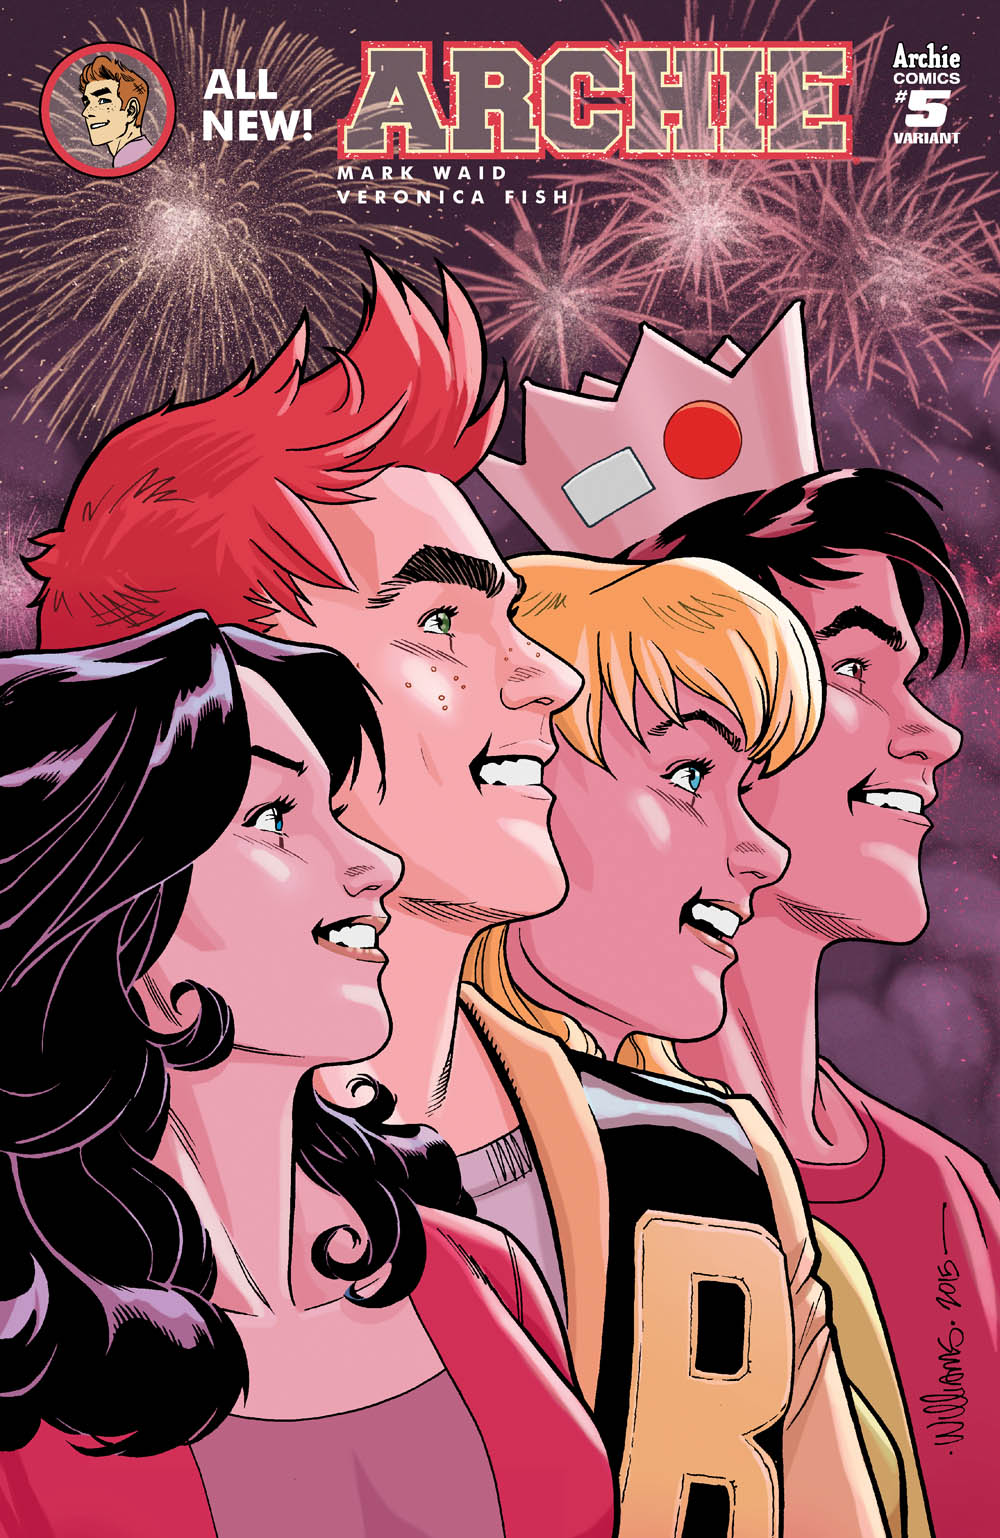 Archie#5WilliamsVar